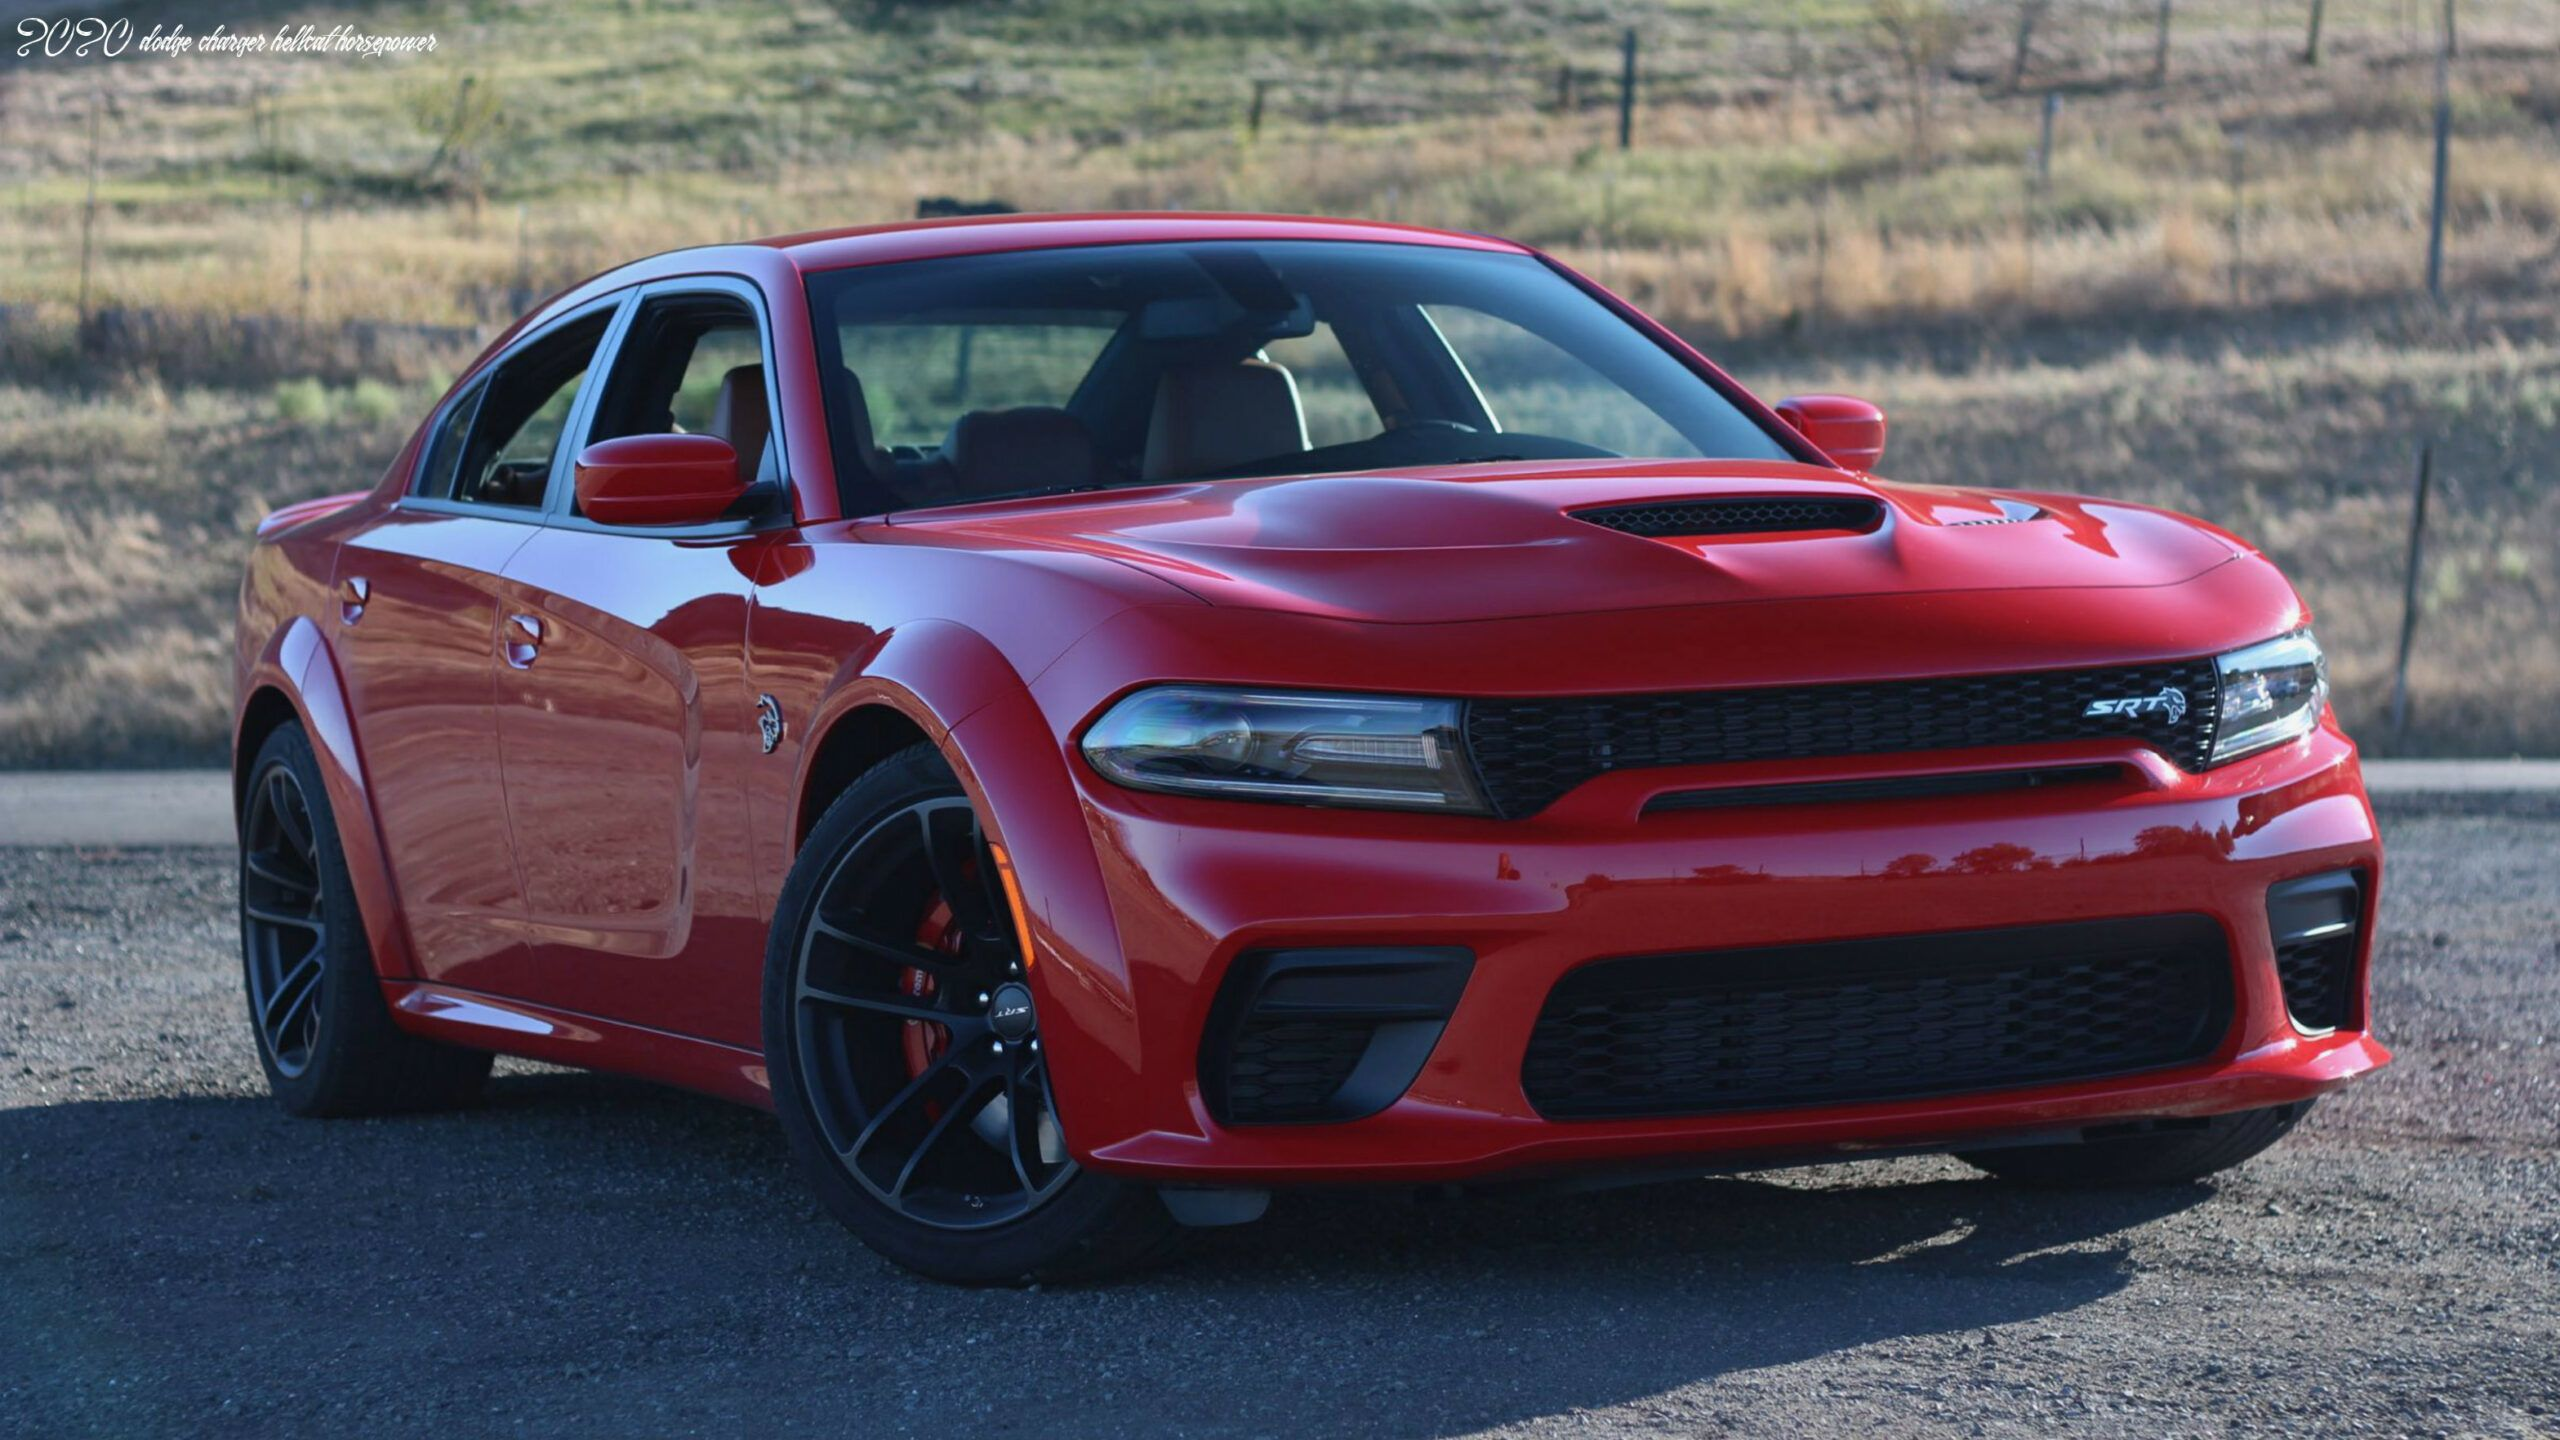 2020 Dodge Charger Hellcat Horsepower In 2020 Dodge Charger Dodge Charger Hellcat Dodge